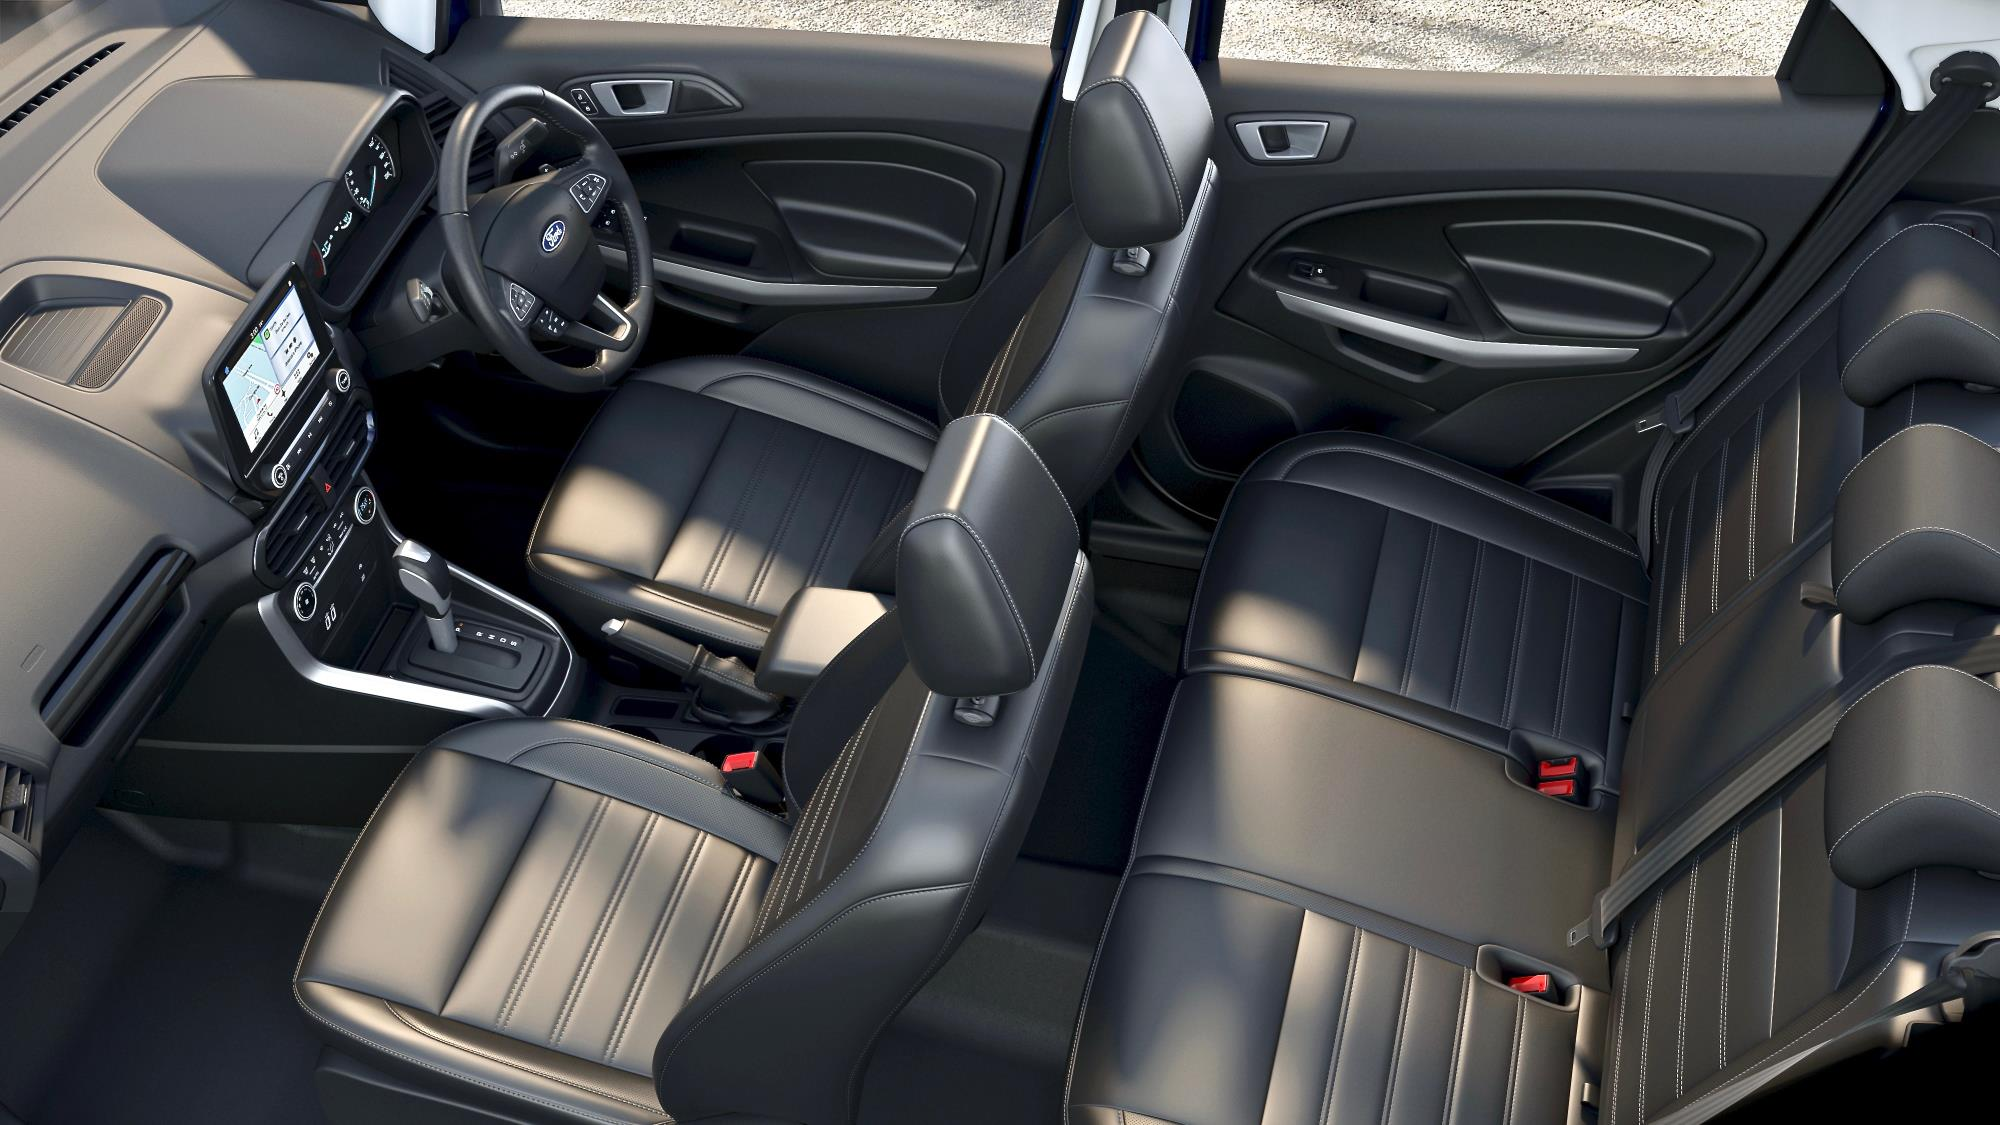 Image result for ford ecosport 2018 seats